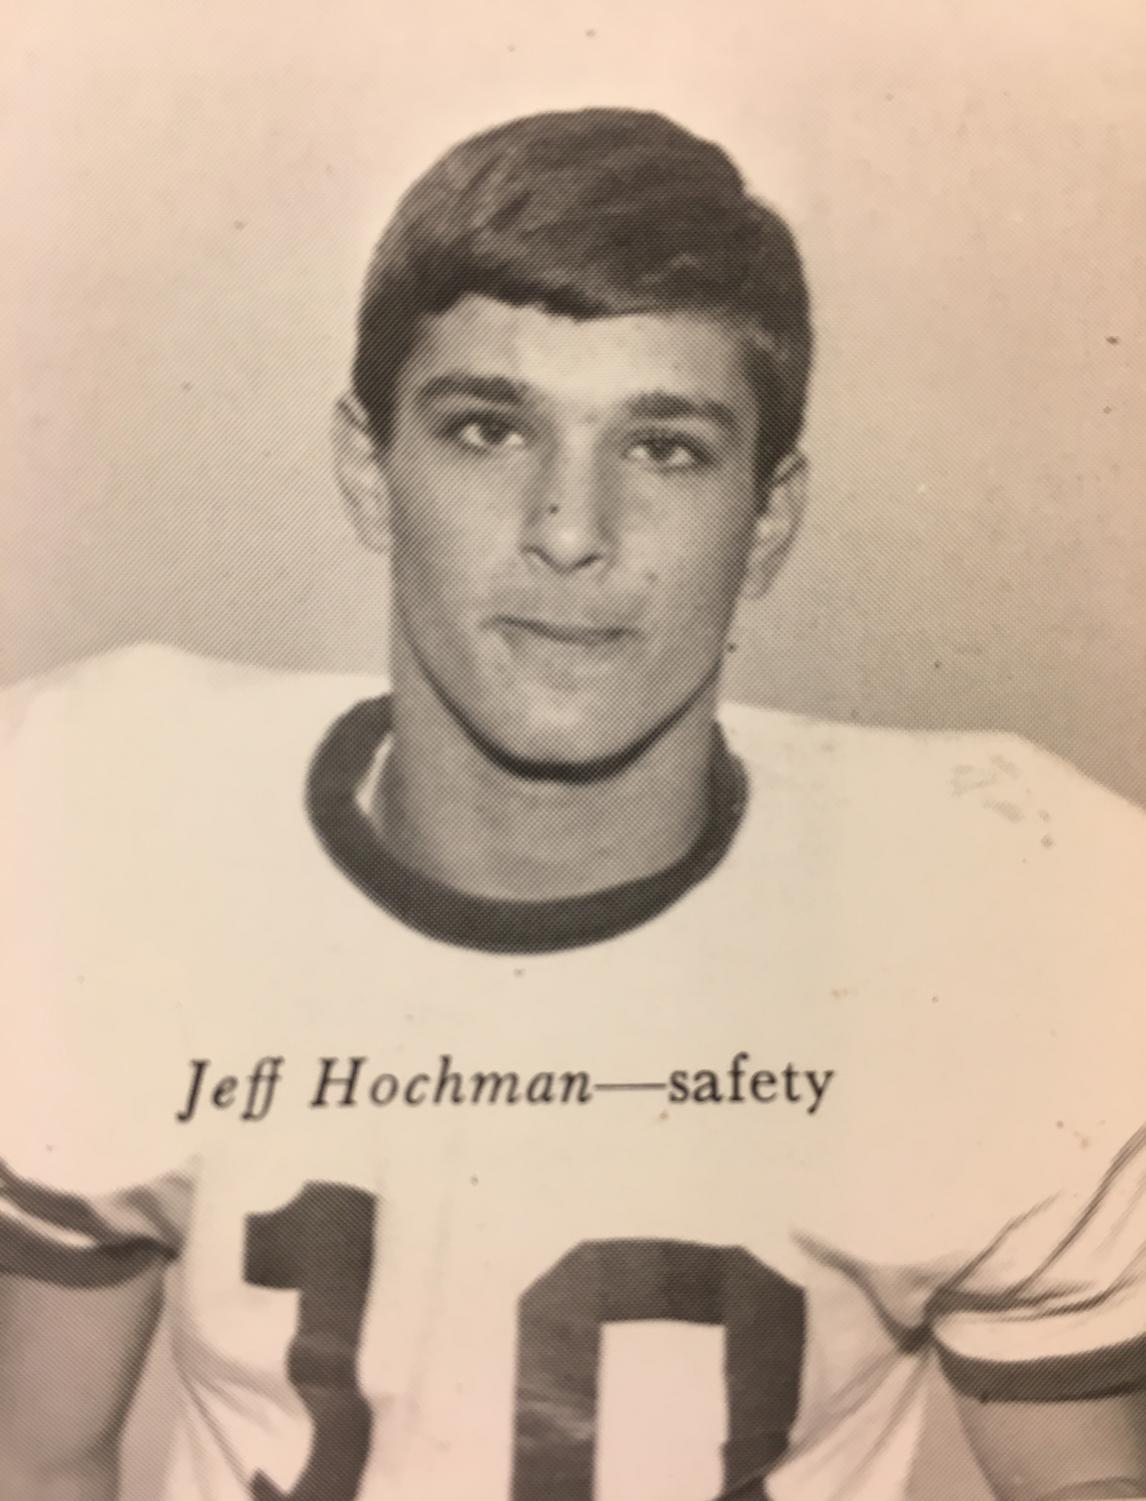 Jeff Hochman, Class of 1967, has been a Clayton resident for almost 70 years.